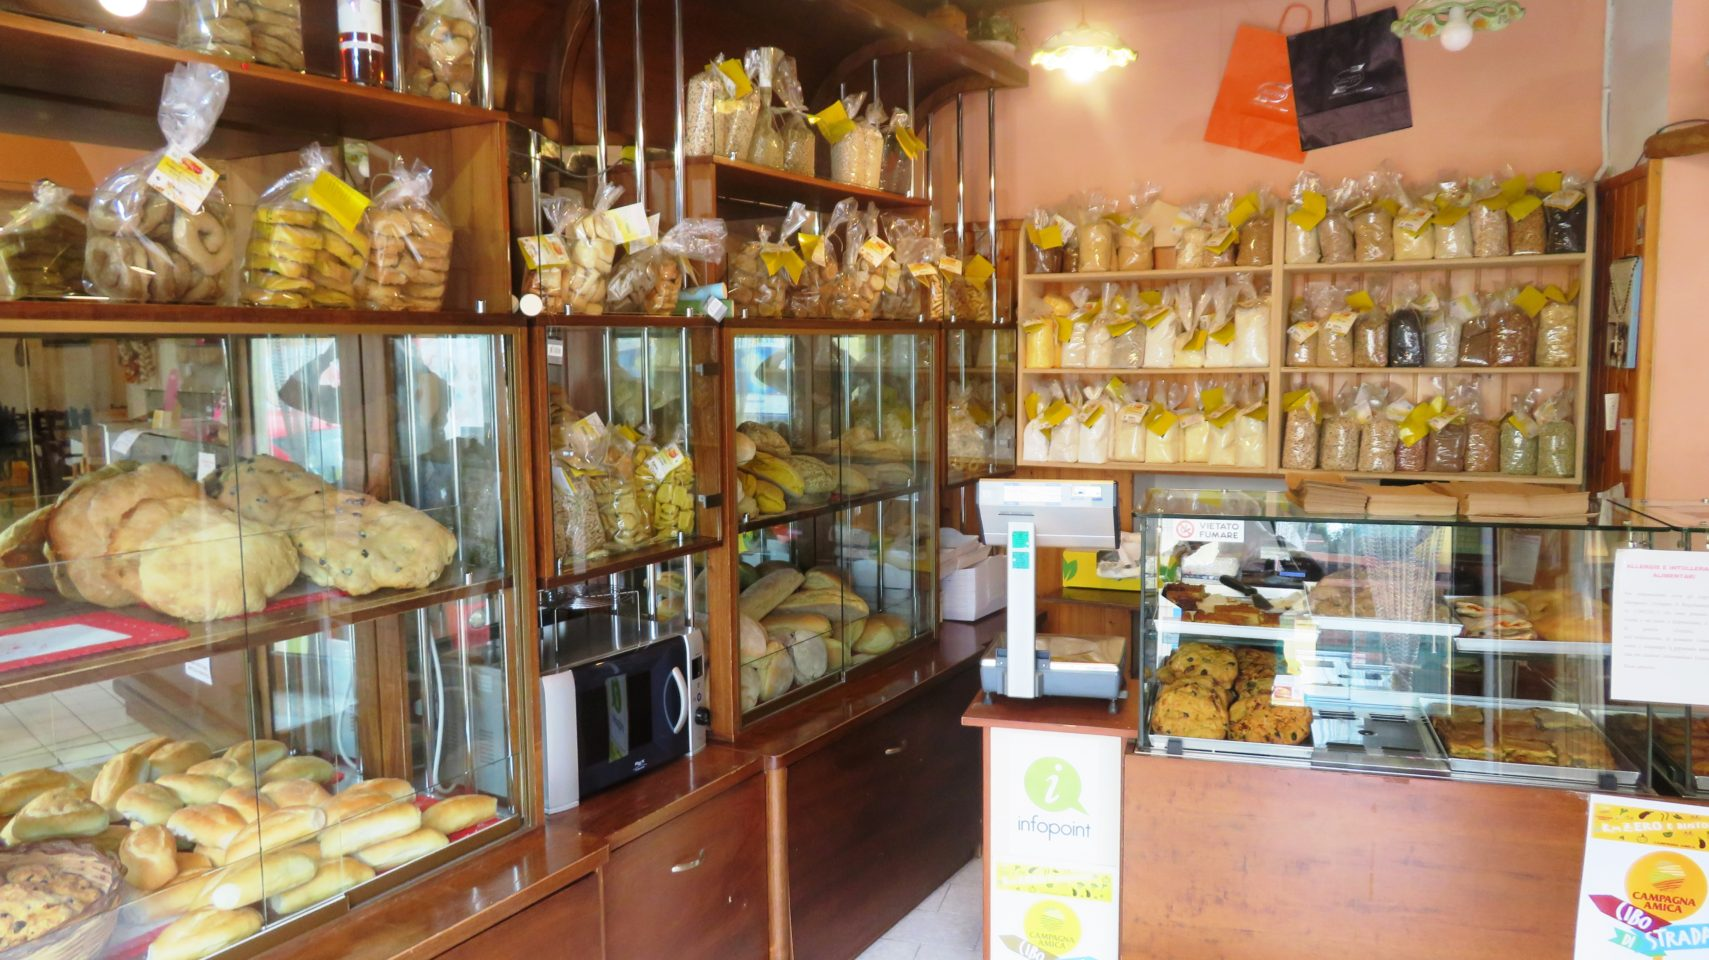 Farmer/Miller/Baker Panificio Caroppo in Minervino di Lecce ! The Wholesome Charms of Salento in Italy